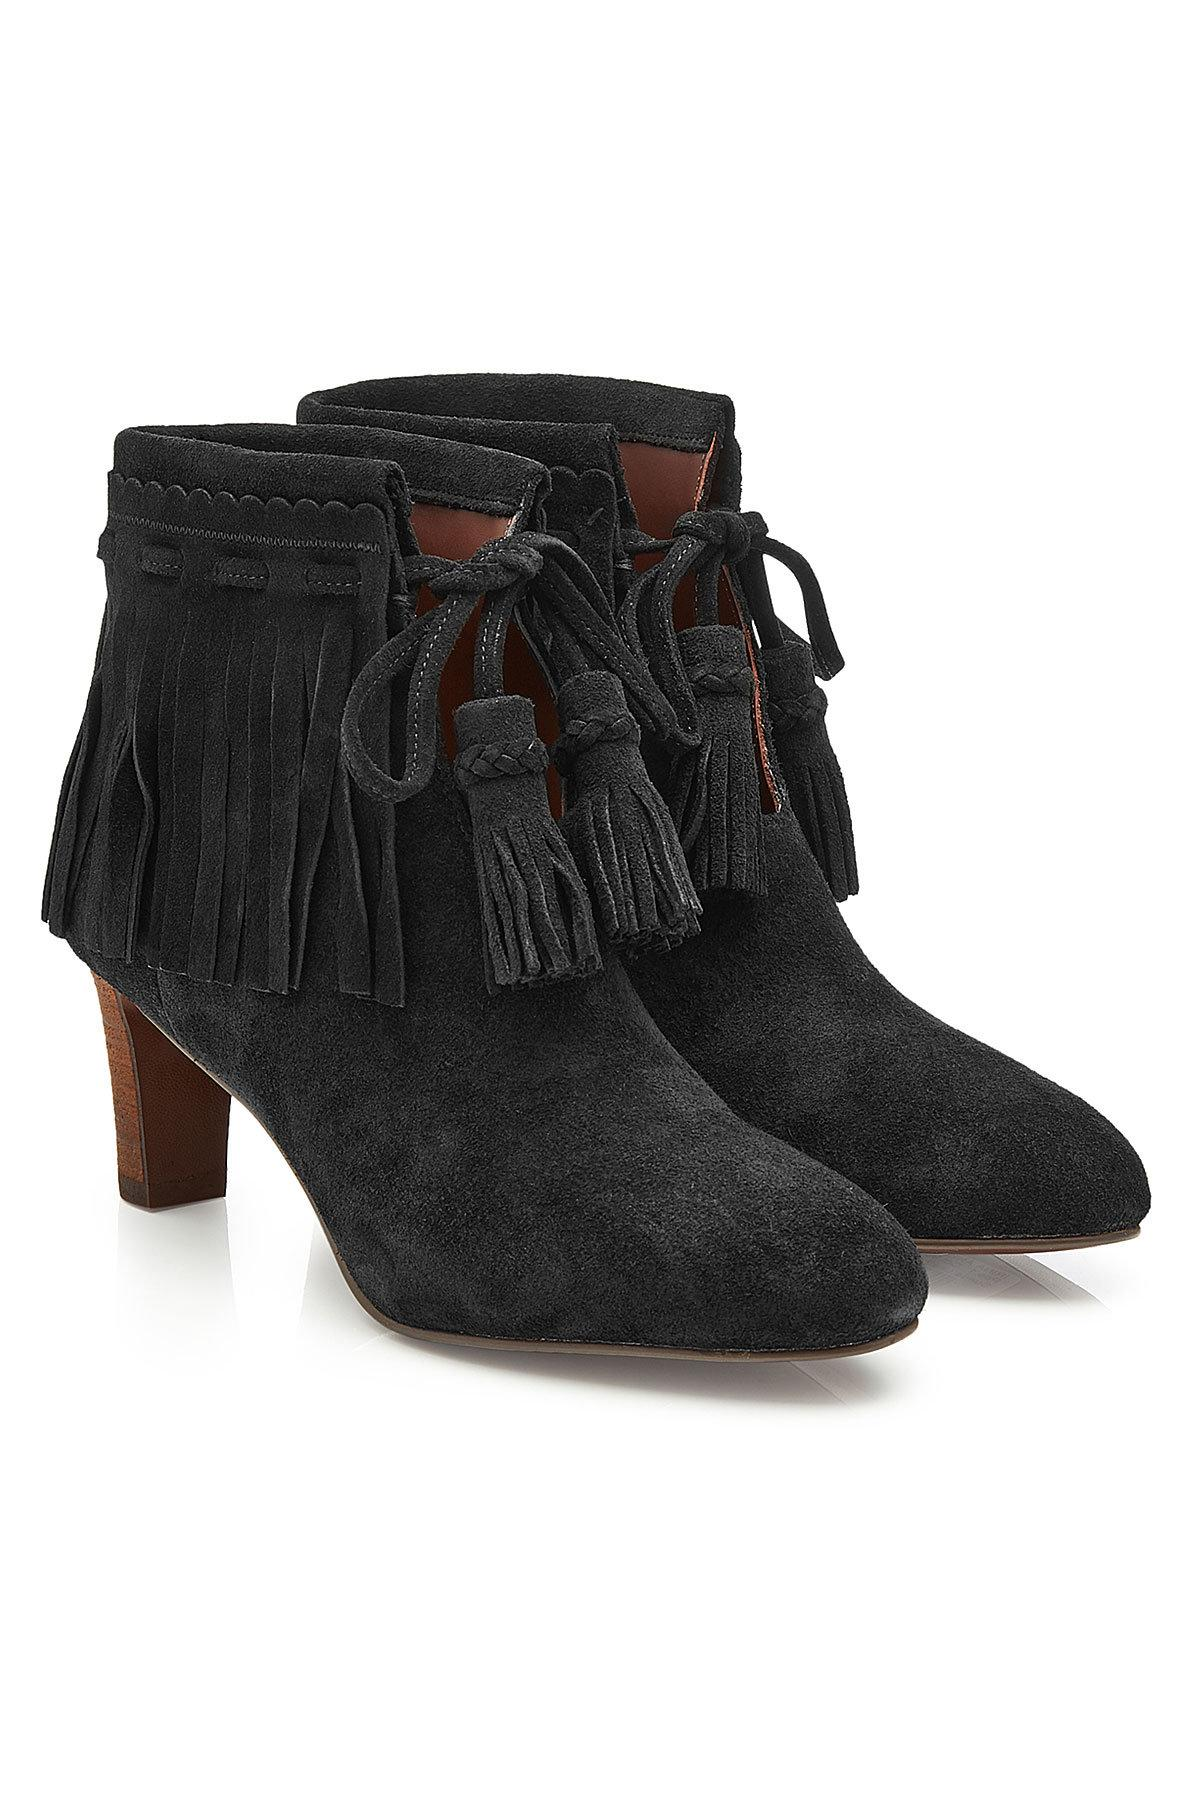 clearance Inexpensive Chloé Leather & Suede Ankle Boots clearance the cheapest D7zUX2X